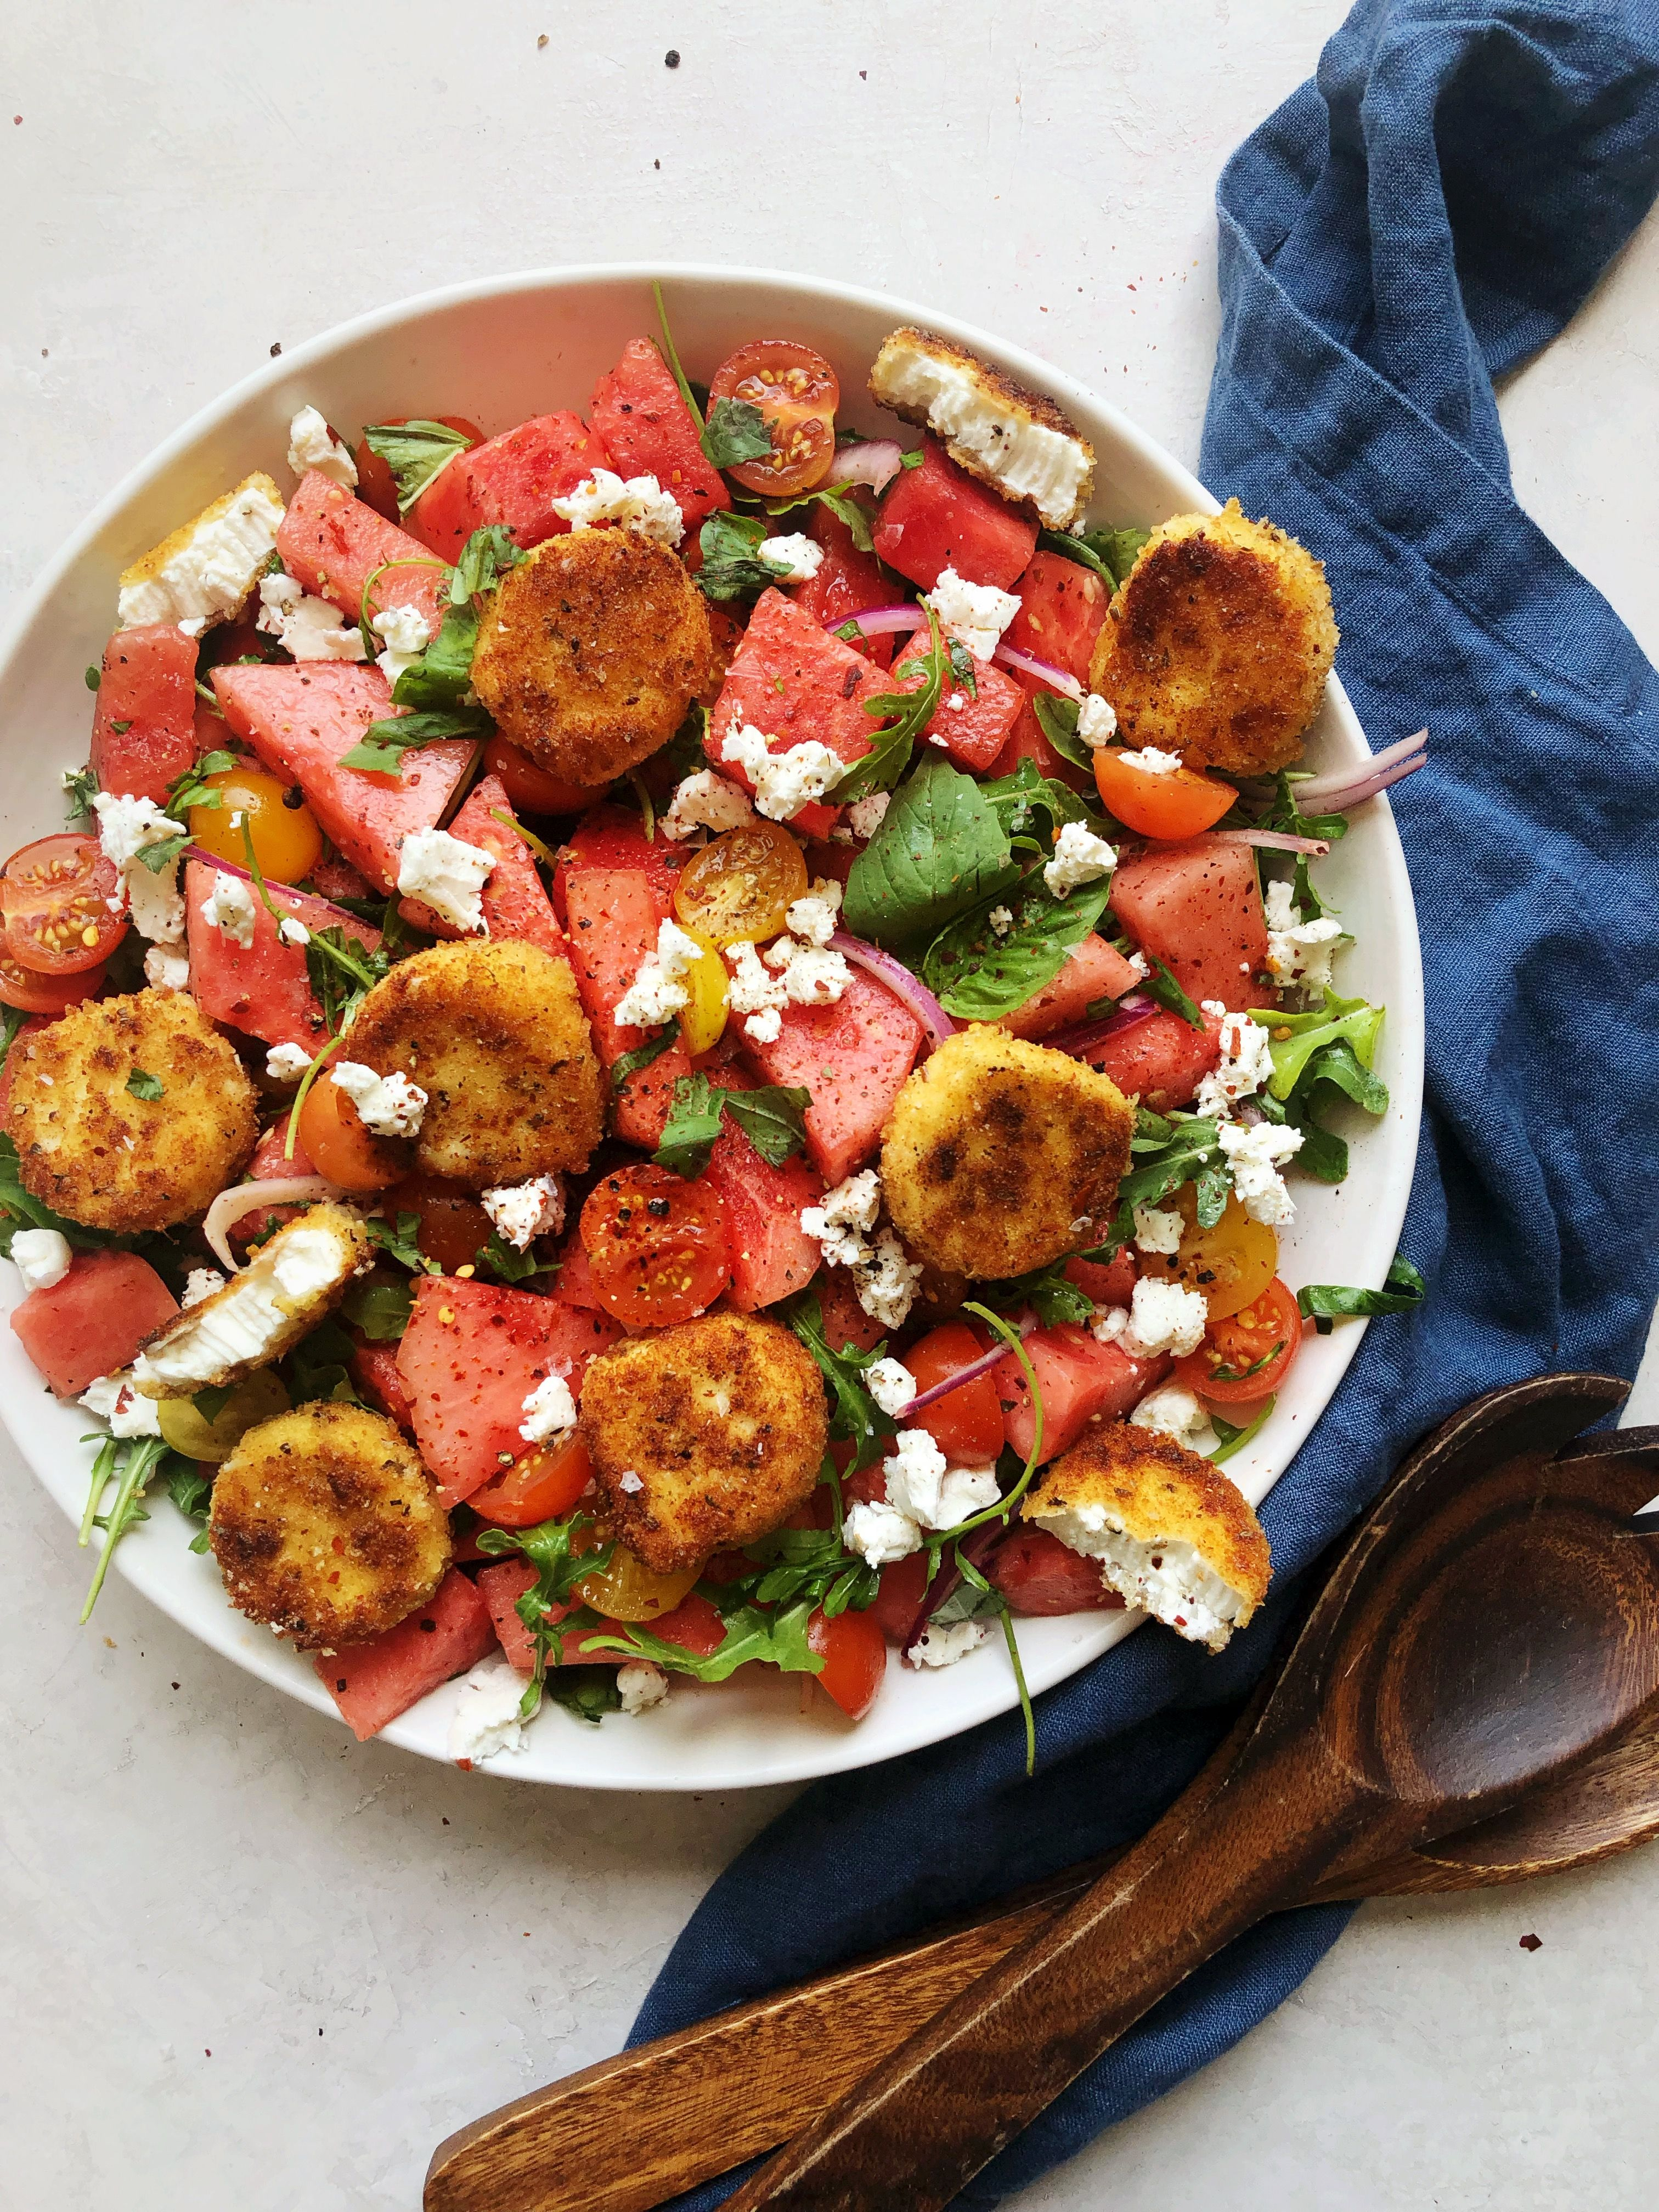 Watermelon and Cherry Tomato Salad with Fried Goat Cheese Medallions